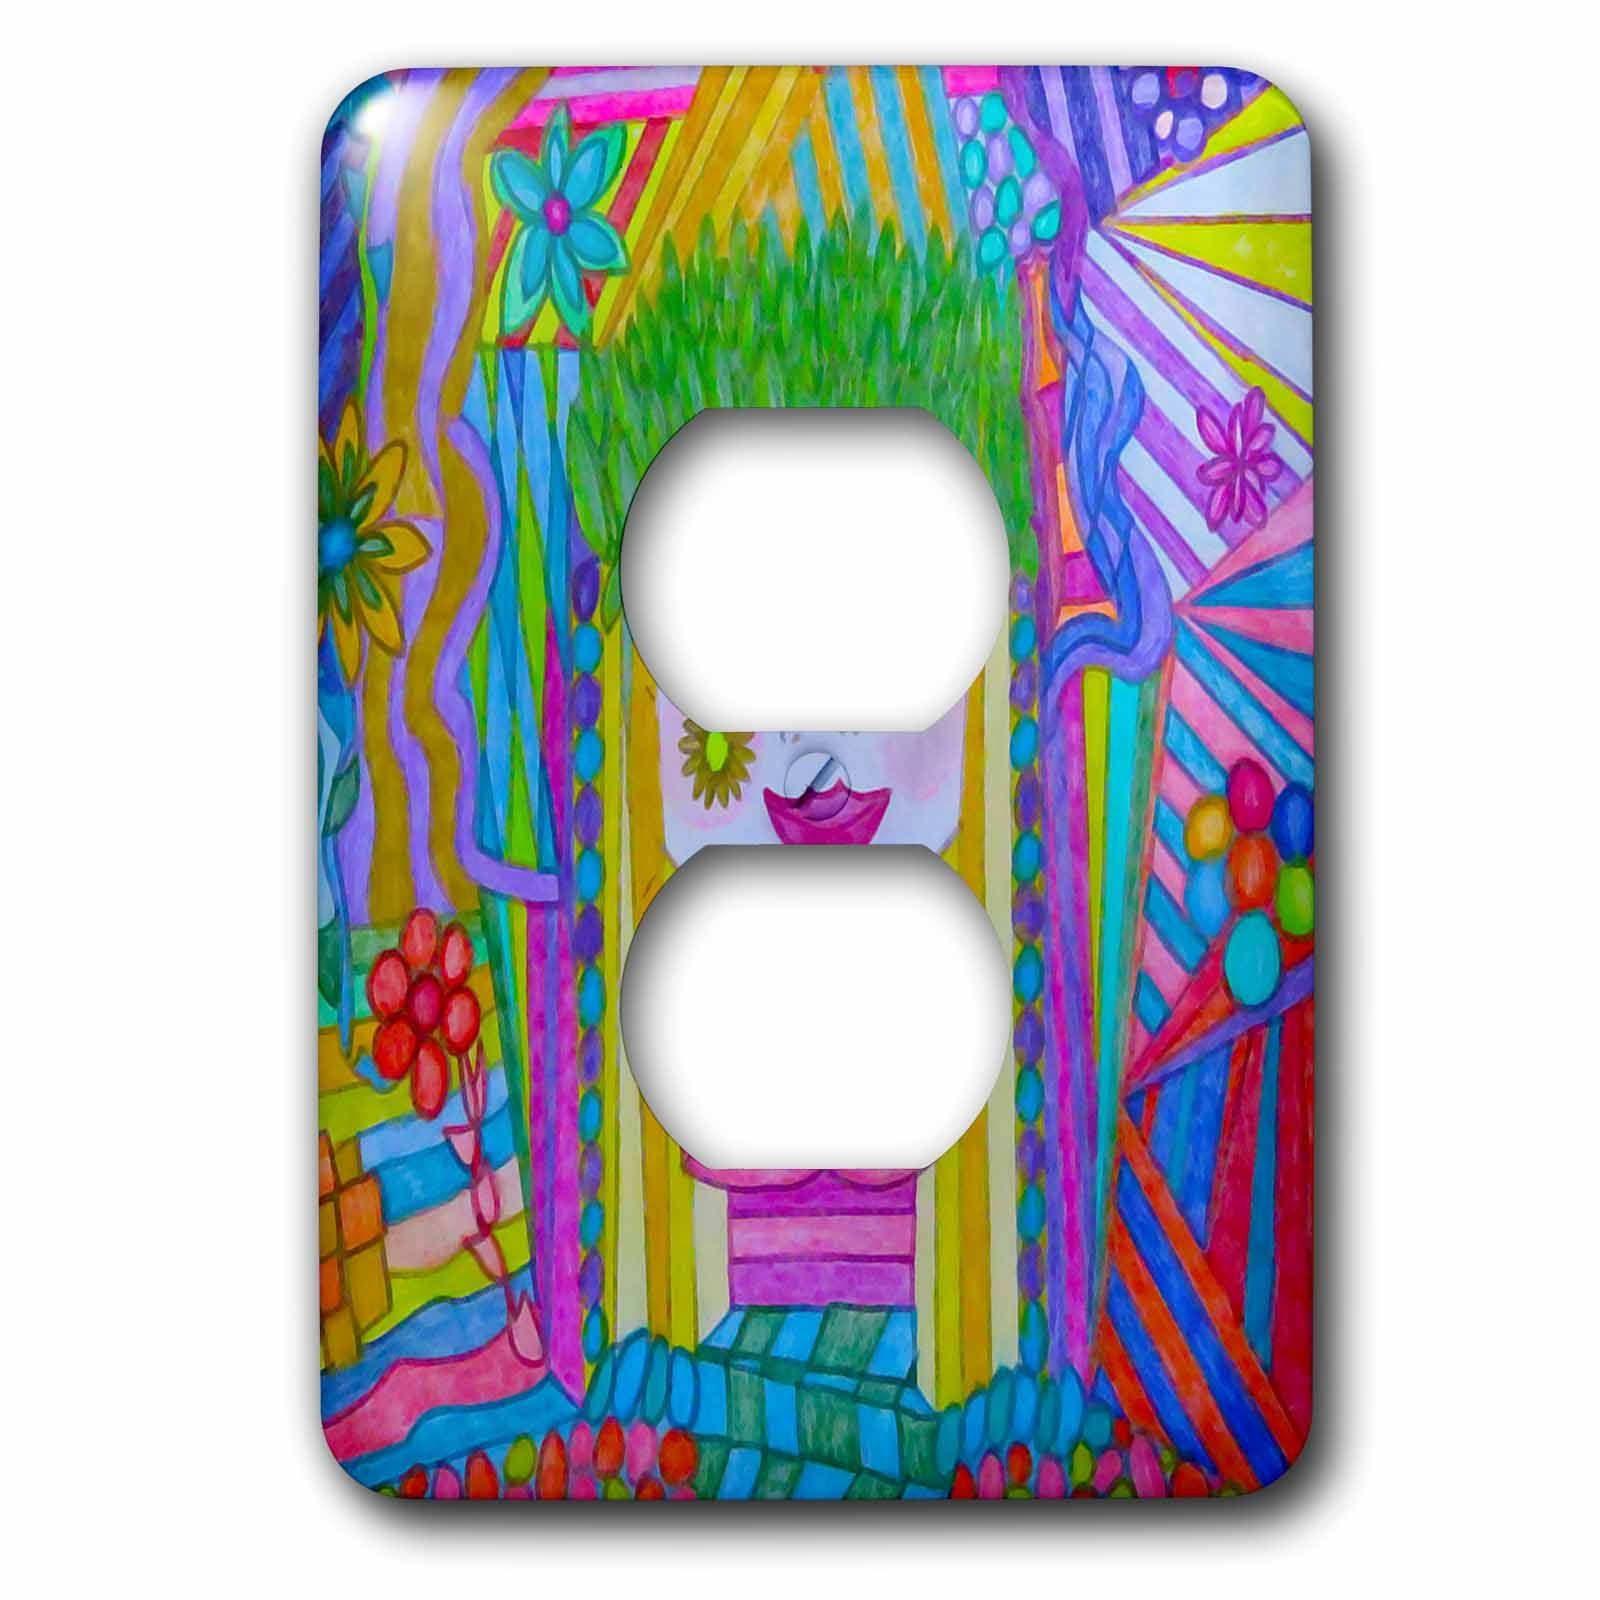 3dRose Jos Fauxtographee- Drawing of a Girl - A sketch of a woman with blonde hair on a colorful design - Light Switch Covers - 2 plug outlet cover (lsp_263433_6)